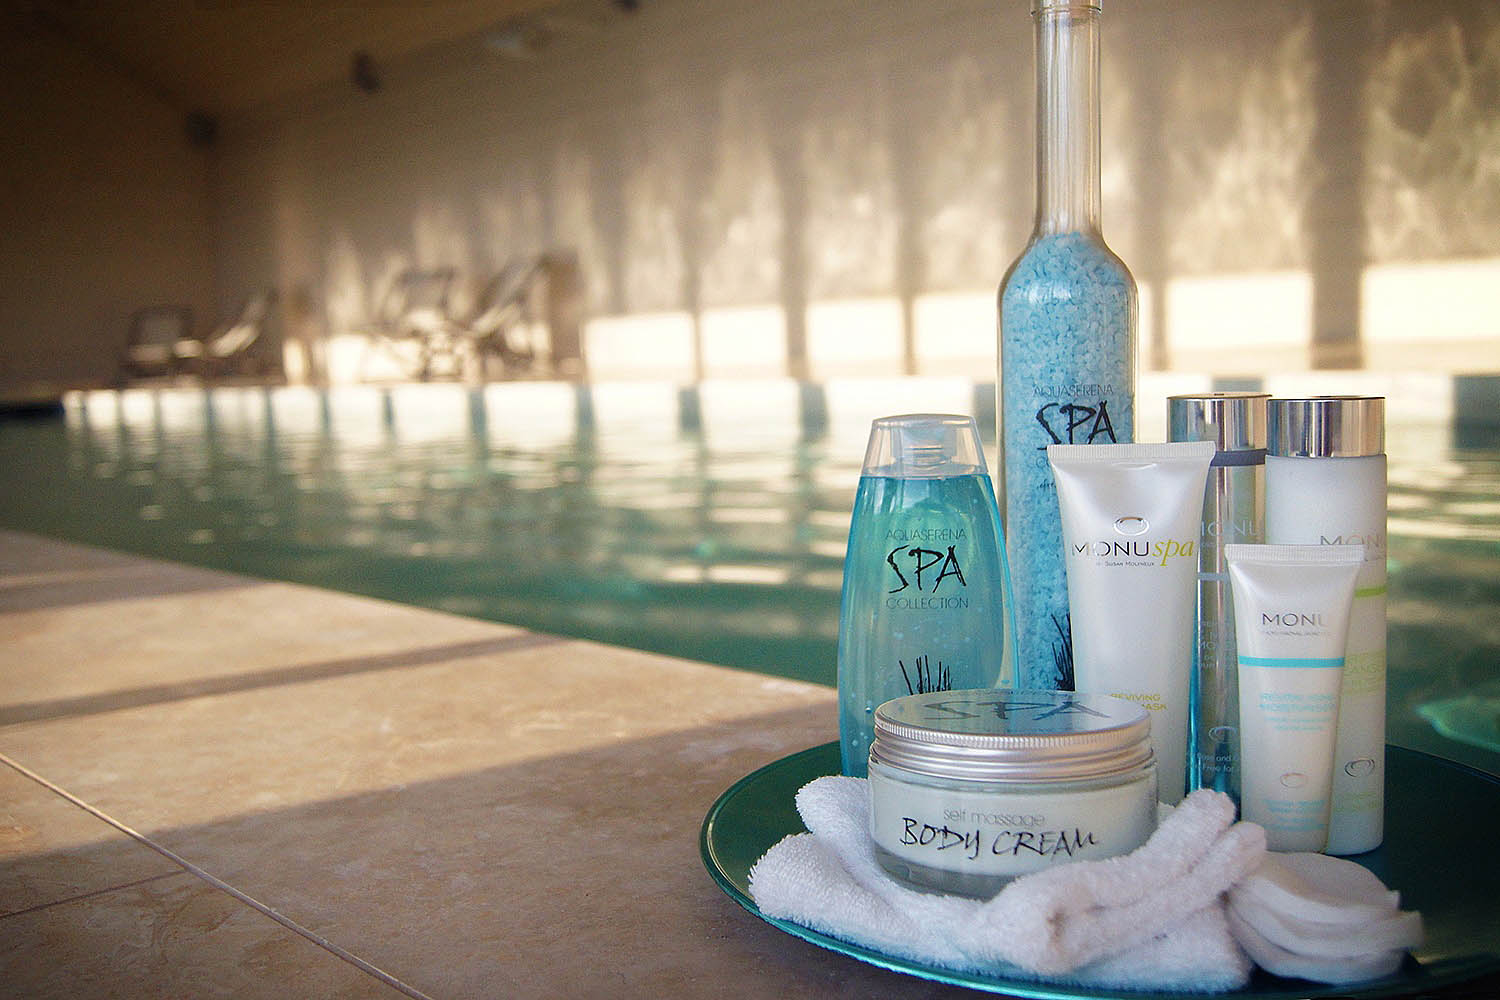 Lilycombe Farm spa treatment products